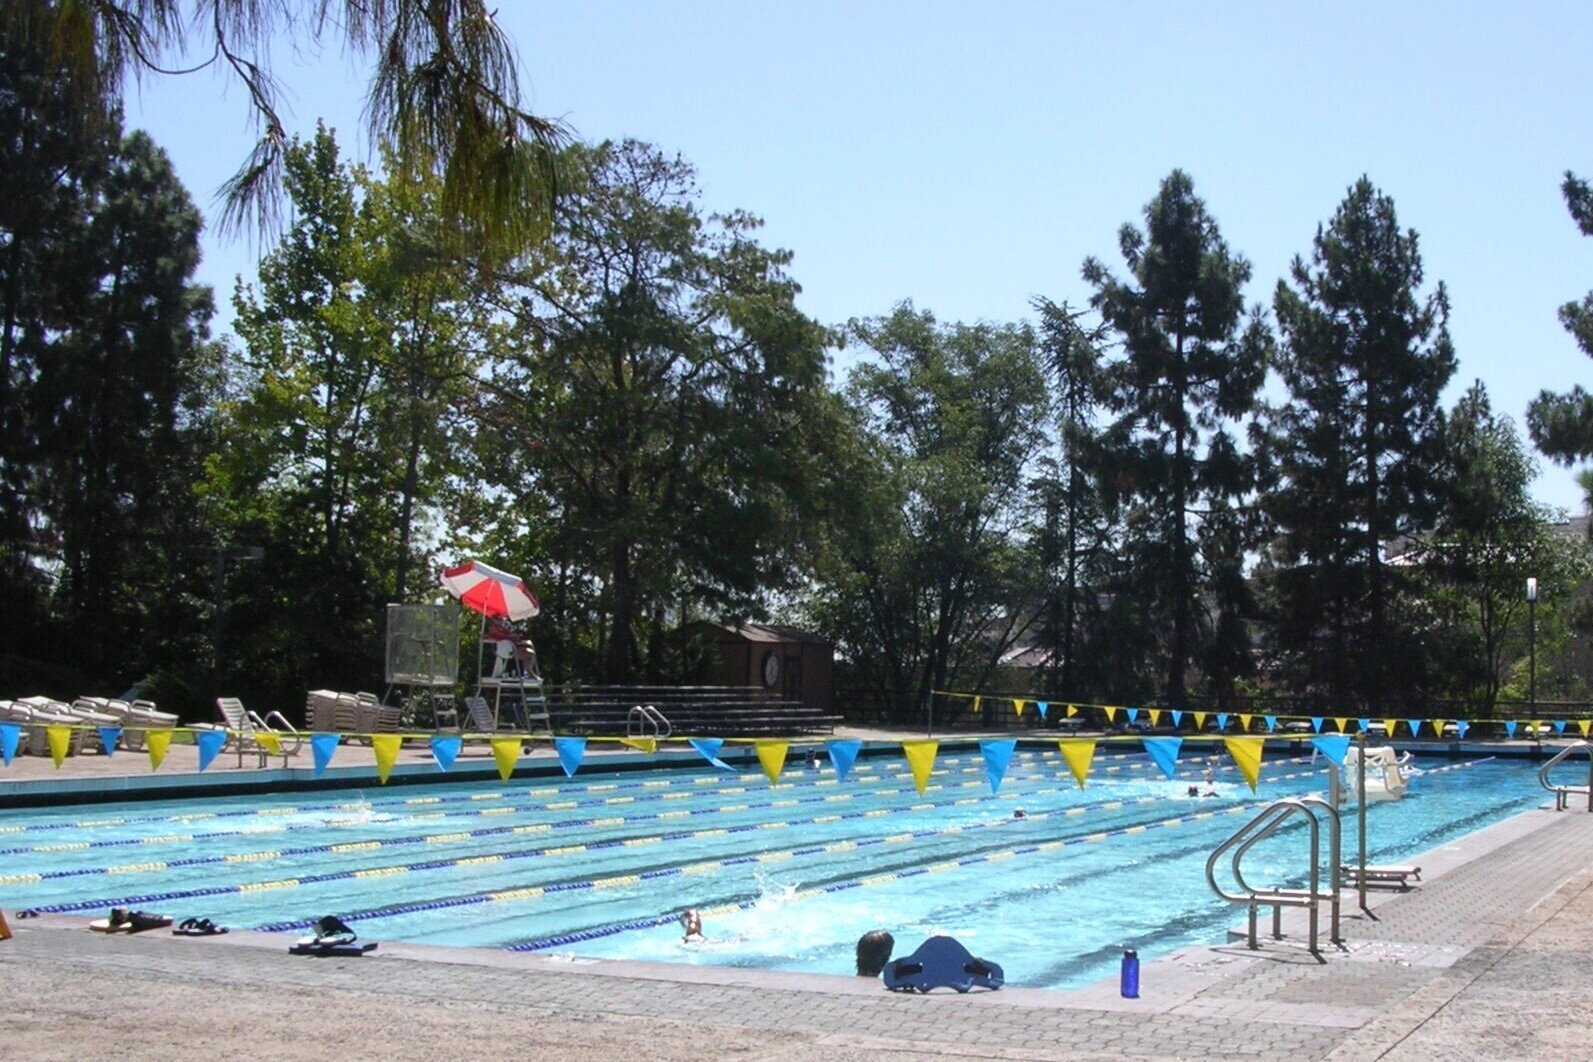 Photo by UCLA Recreation